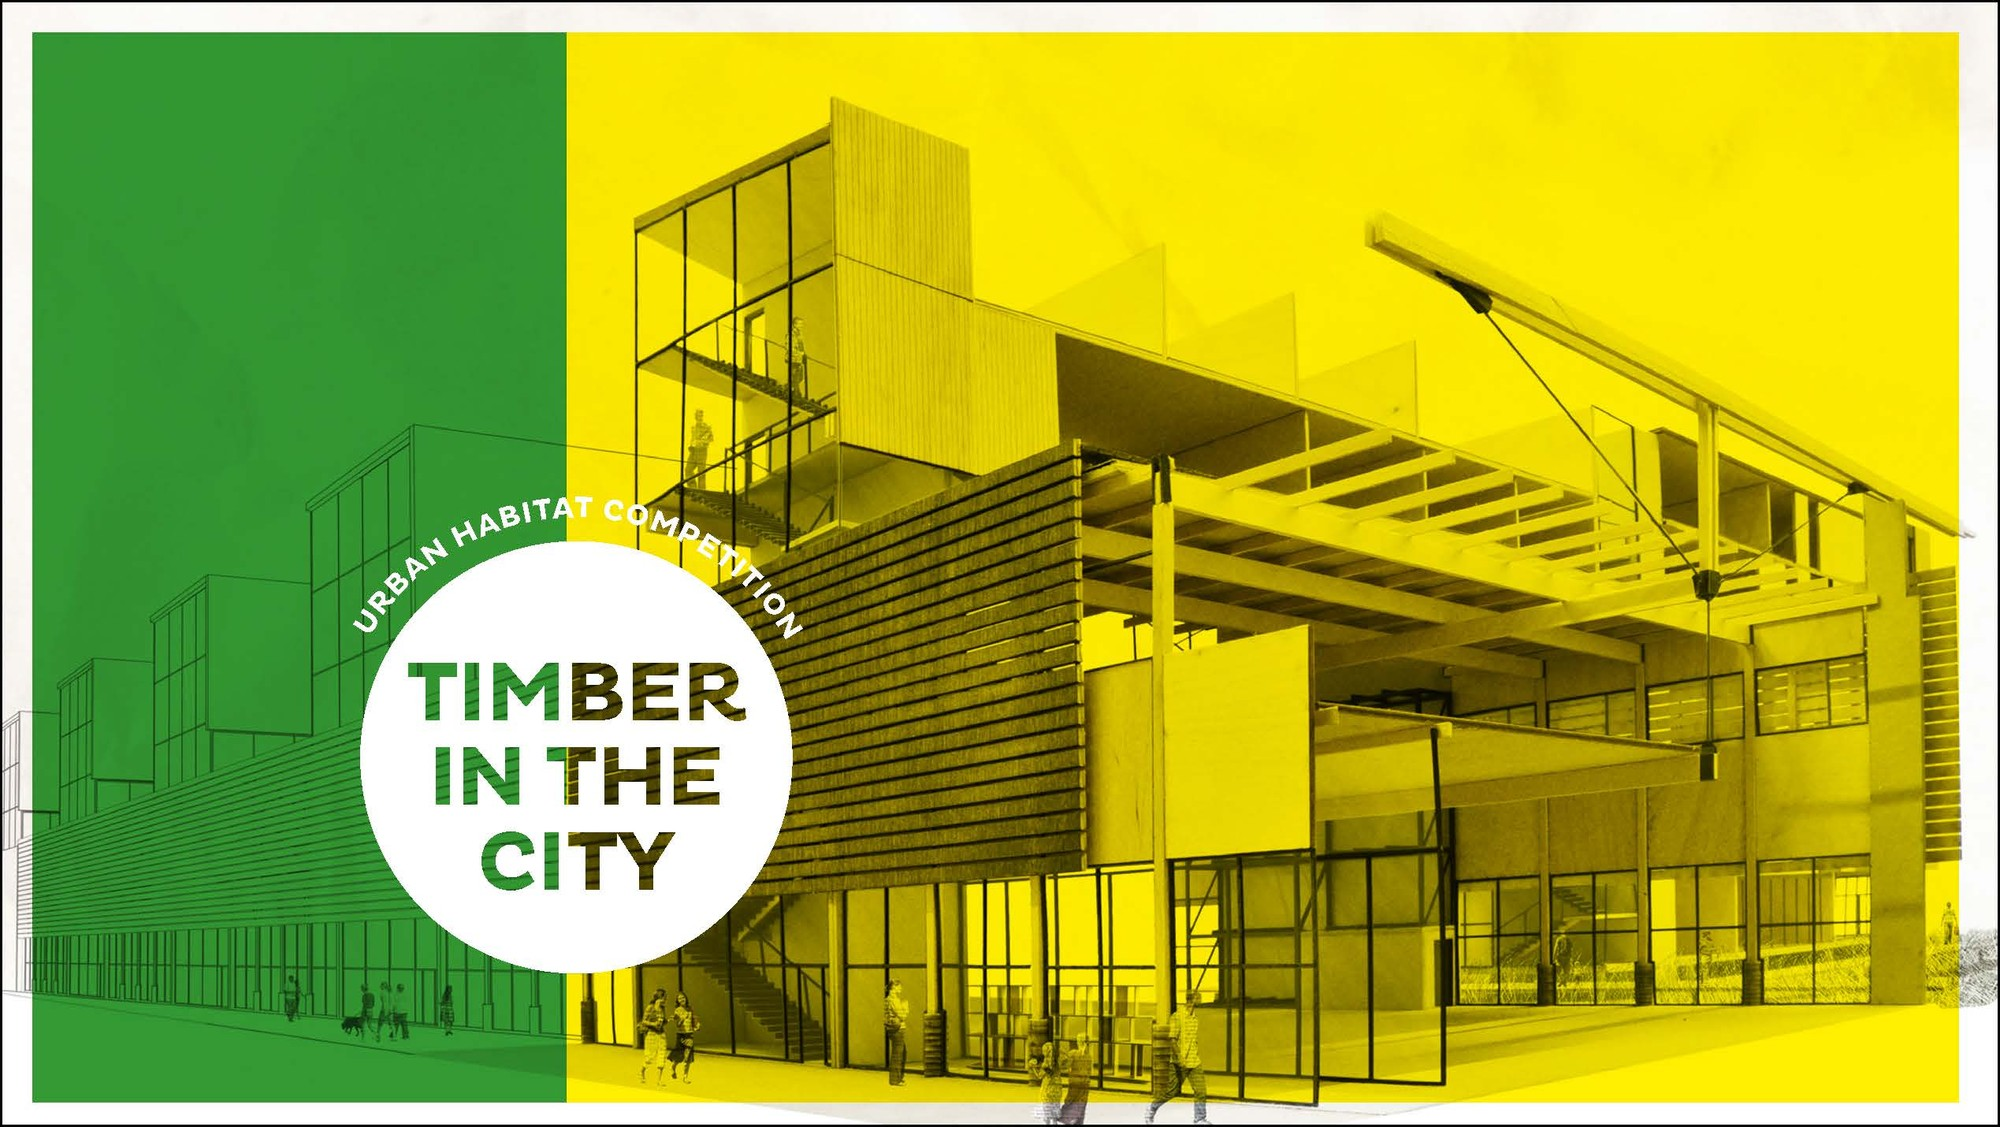 Timber in the city urban habitats competition 2015 2016 for Architectural design review